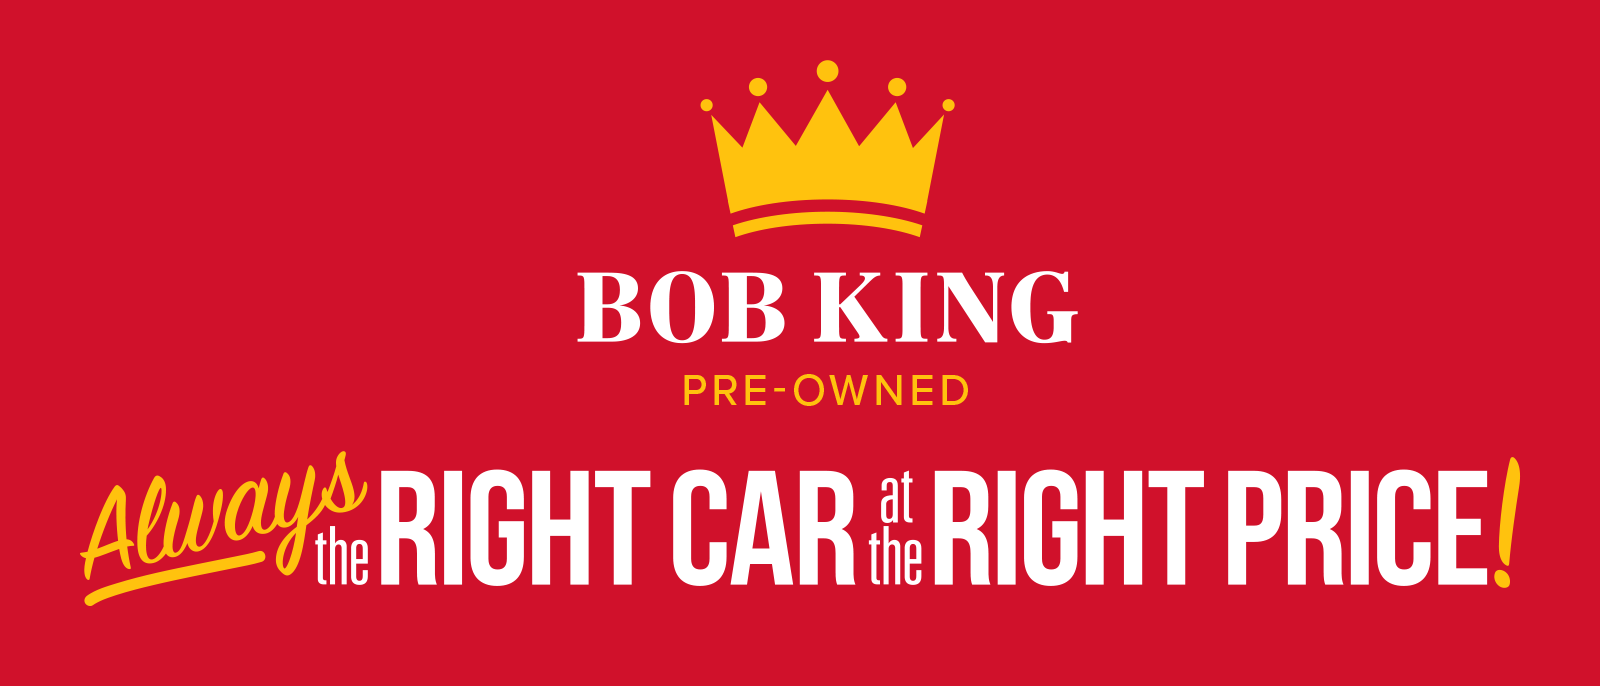 BKAMStoreBanner_Red-right car right price_FINAL.png